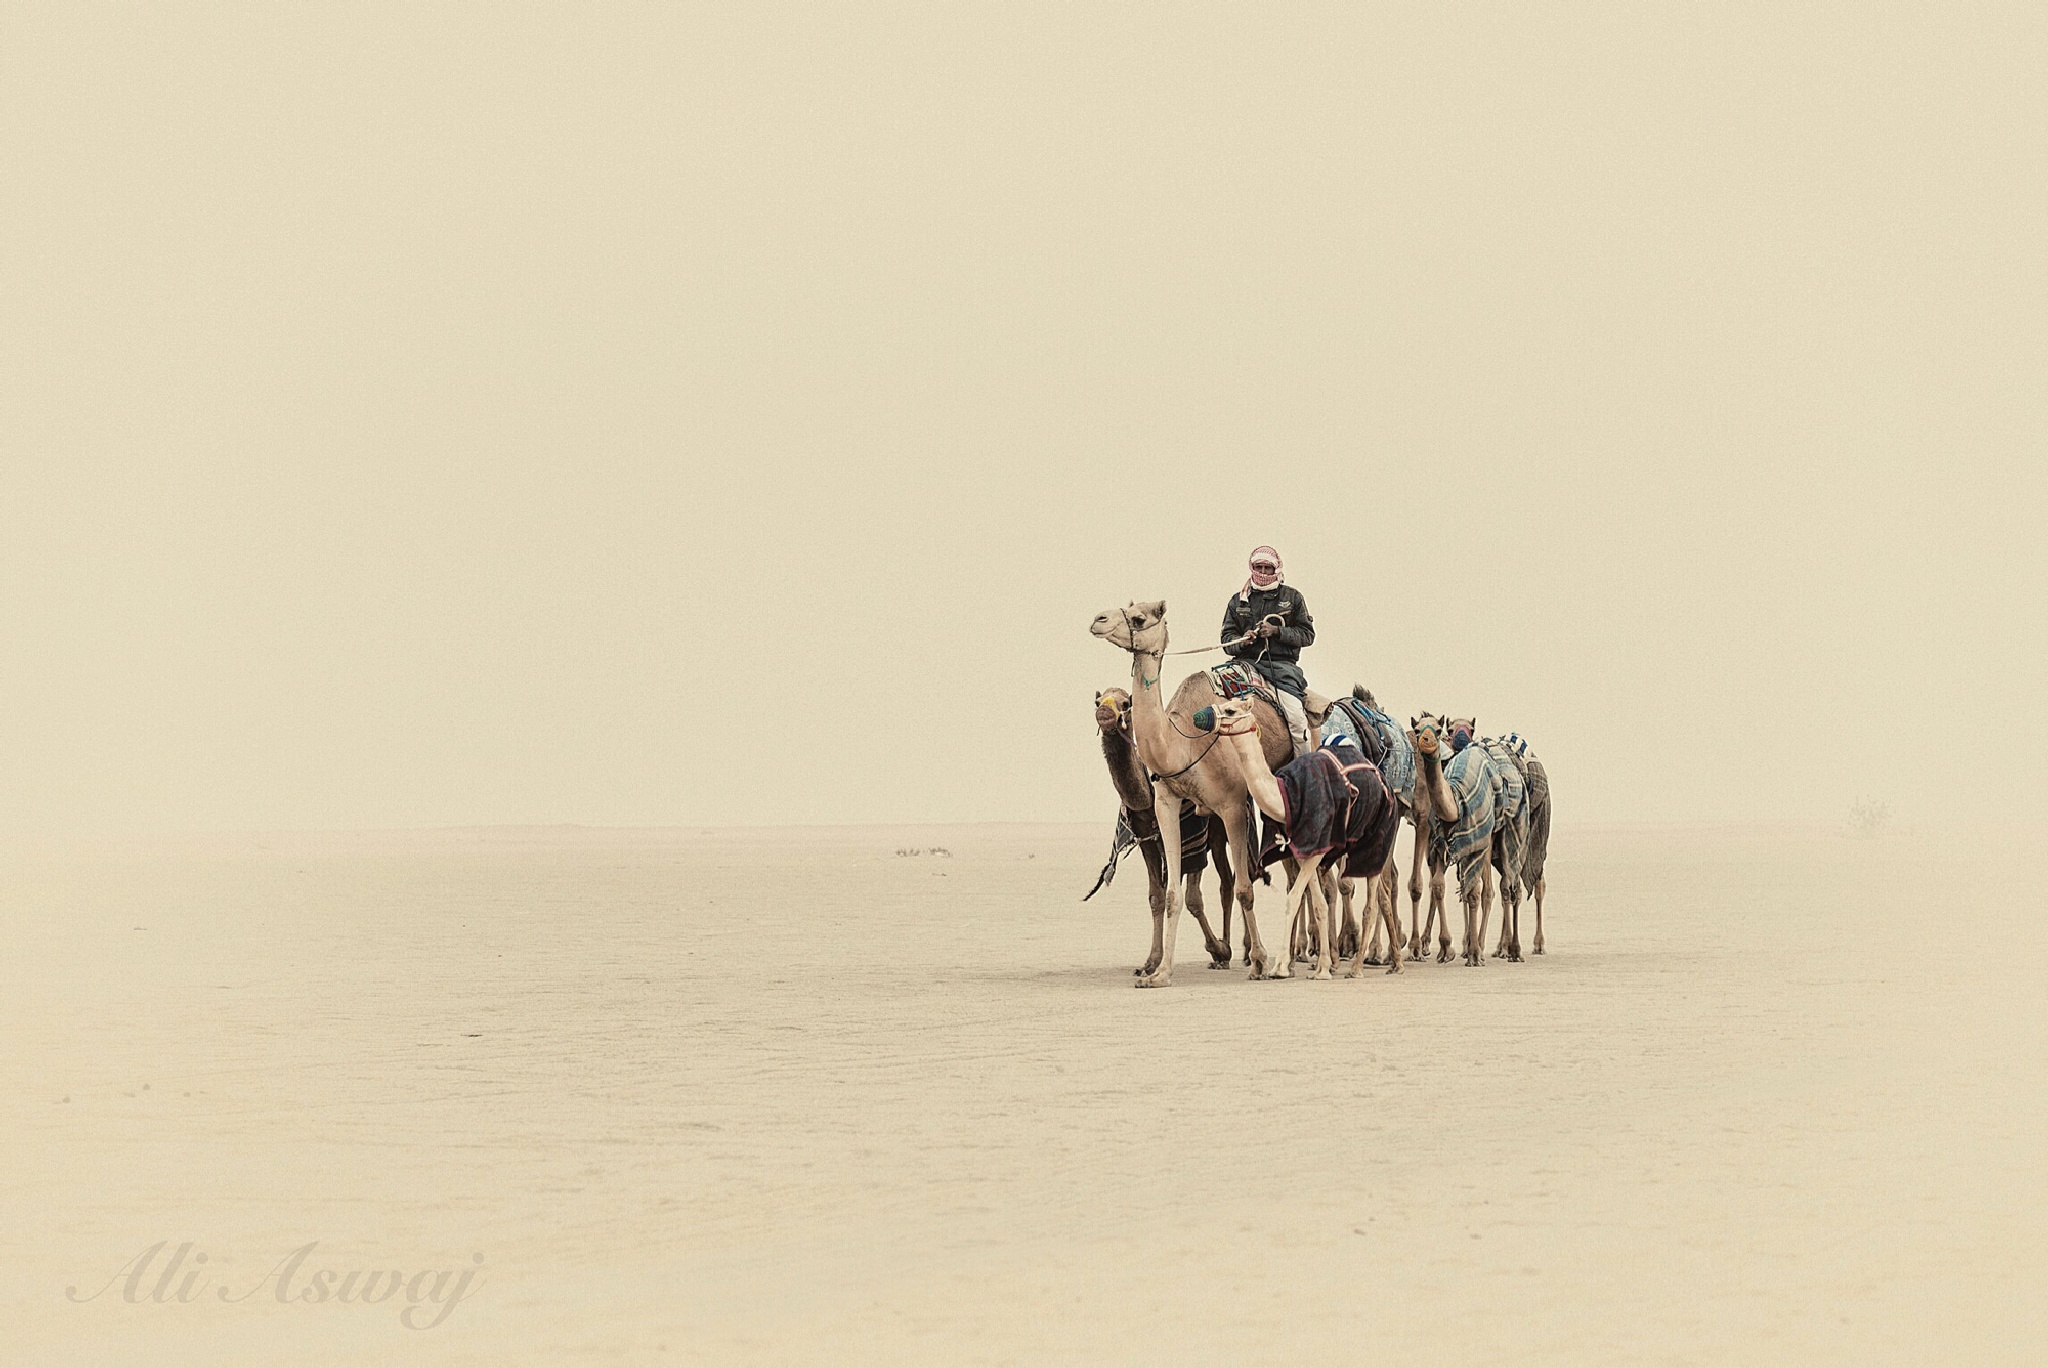 During the Dust by AliAswaj